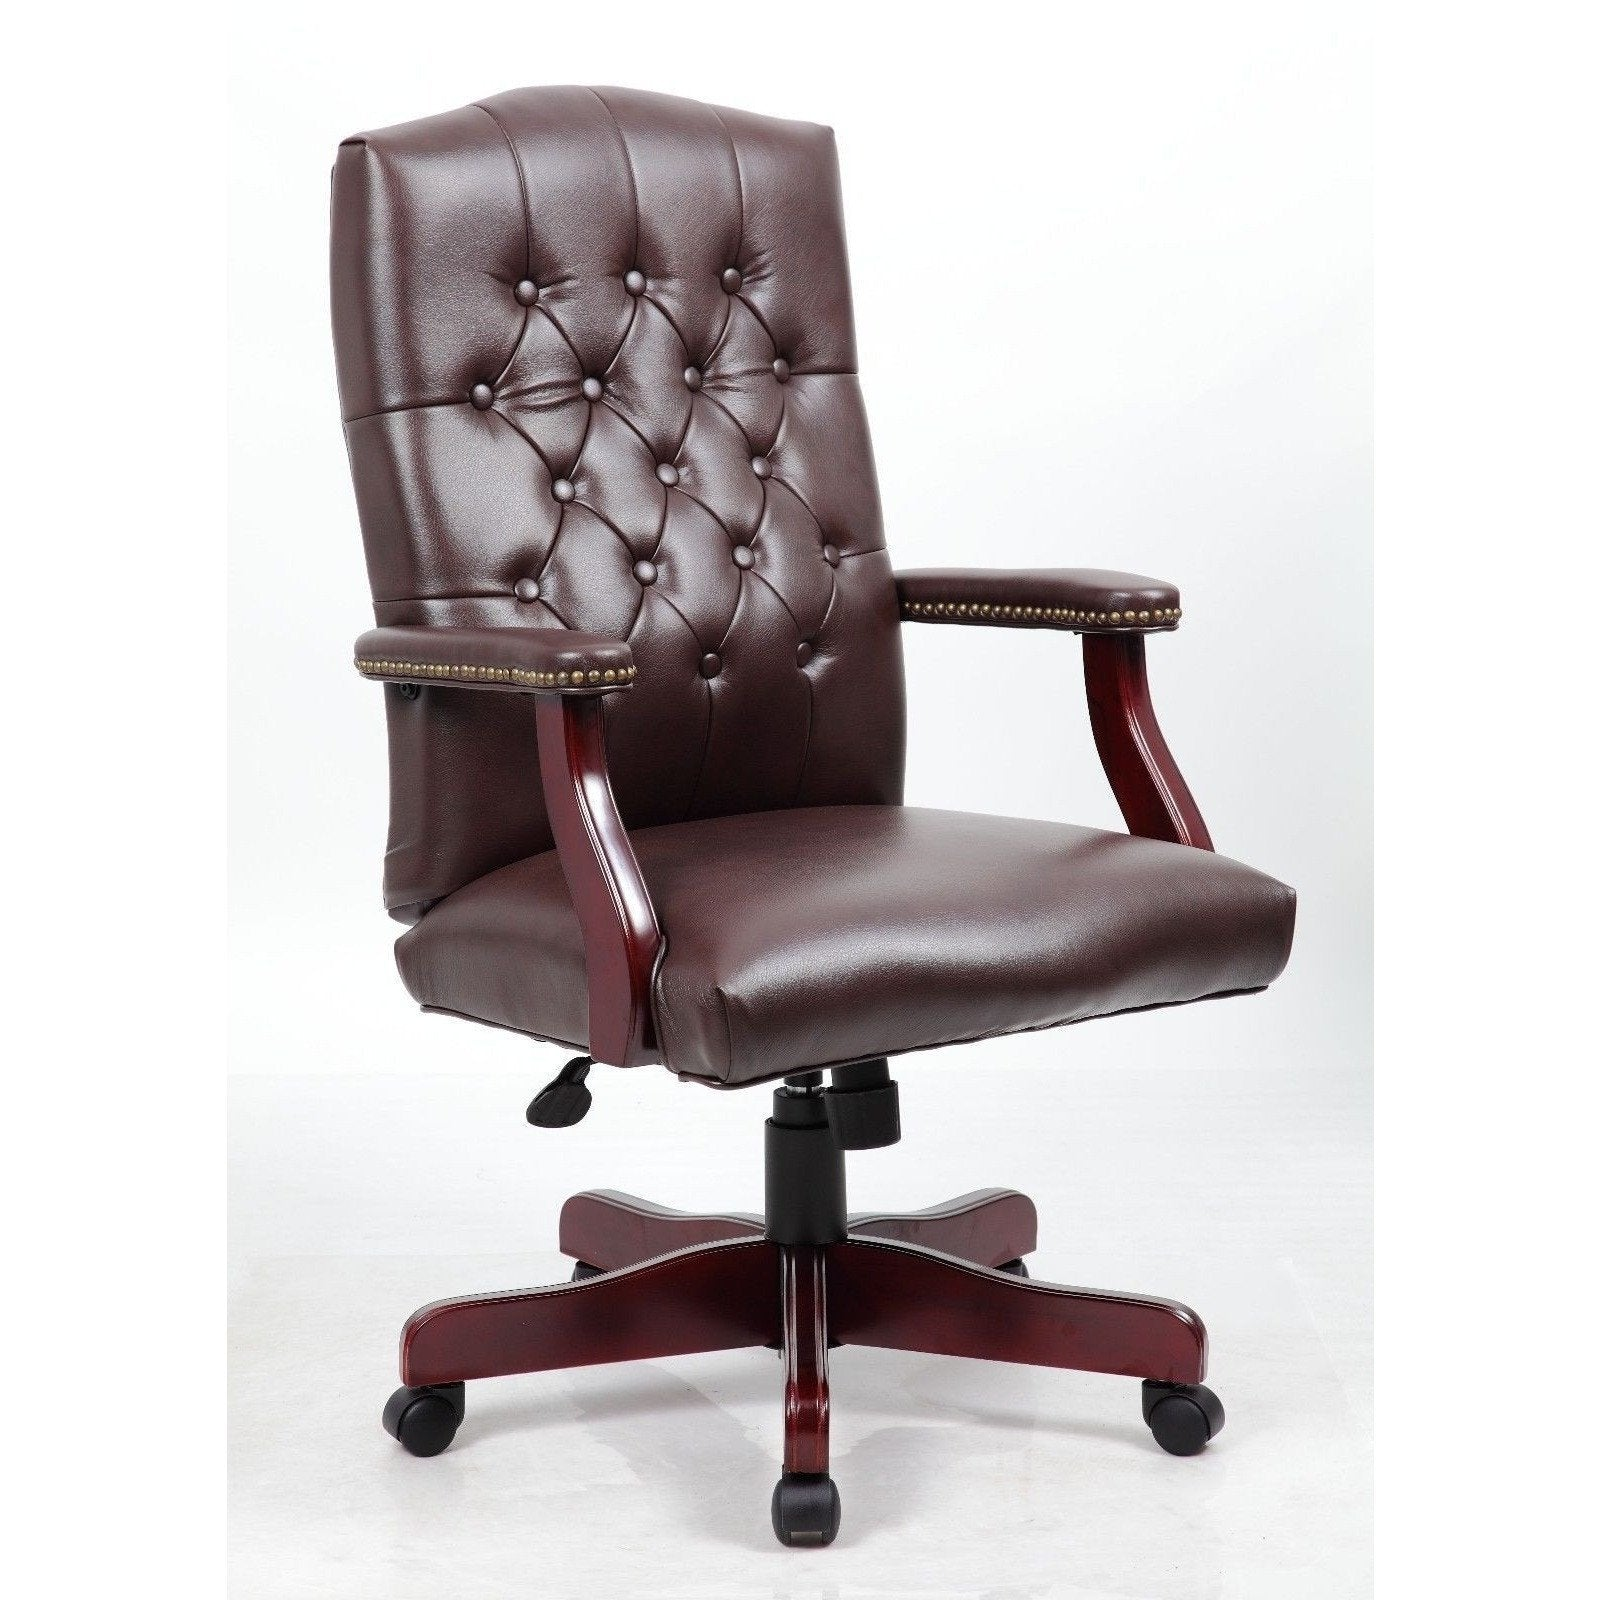 Mid back Traditional Tufted Leather Executive fice Chair Brown